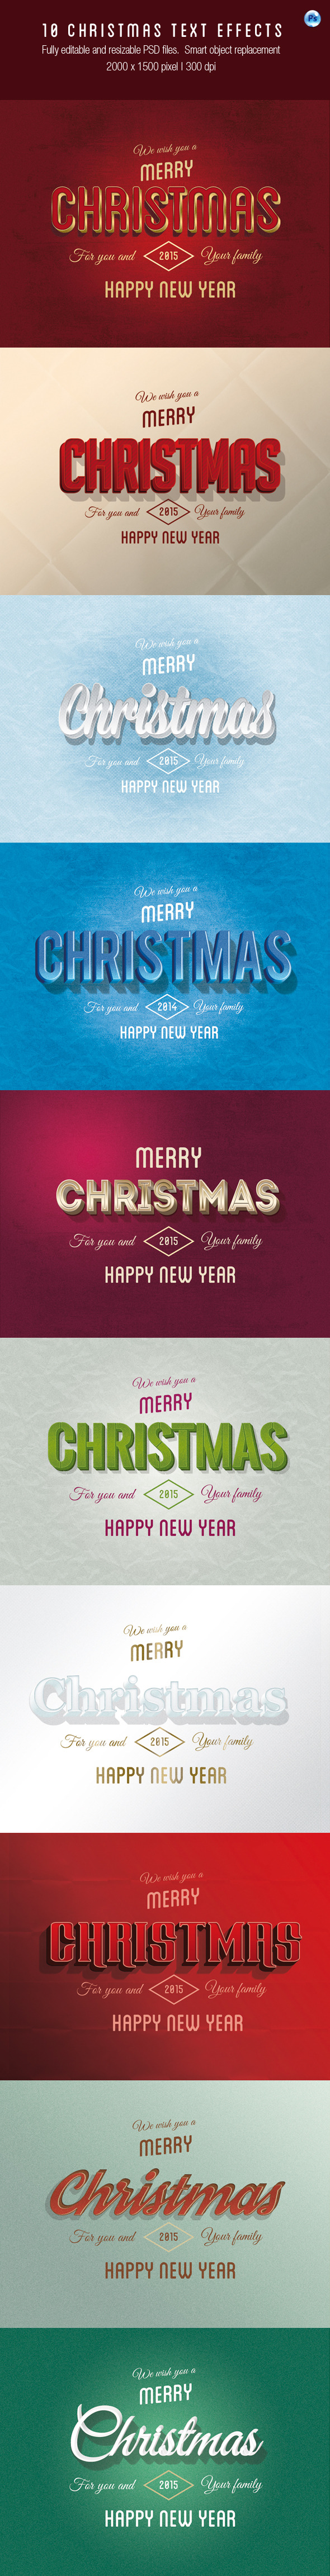 GraphicRiver 10 Christmas Text Effects 9439976